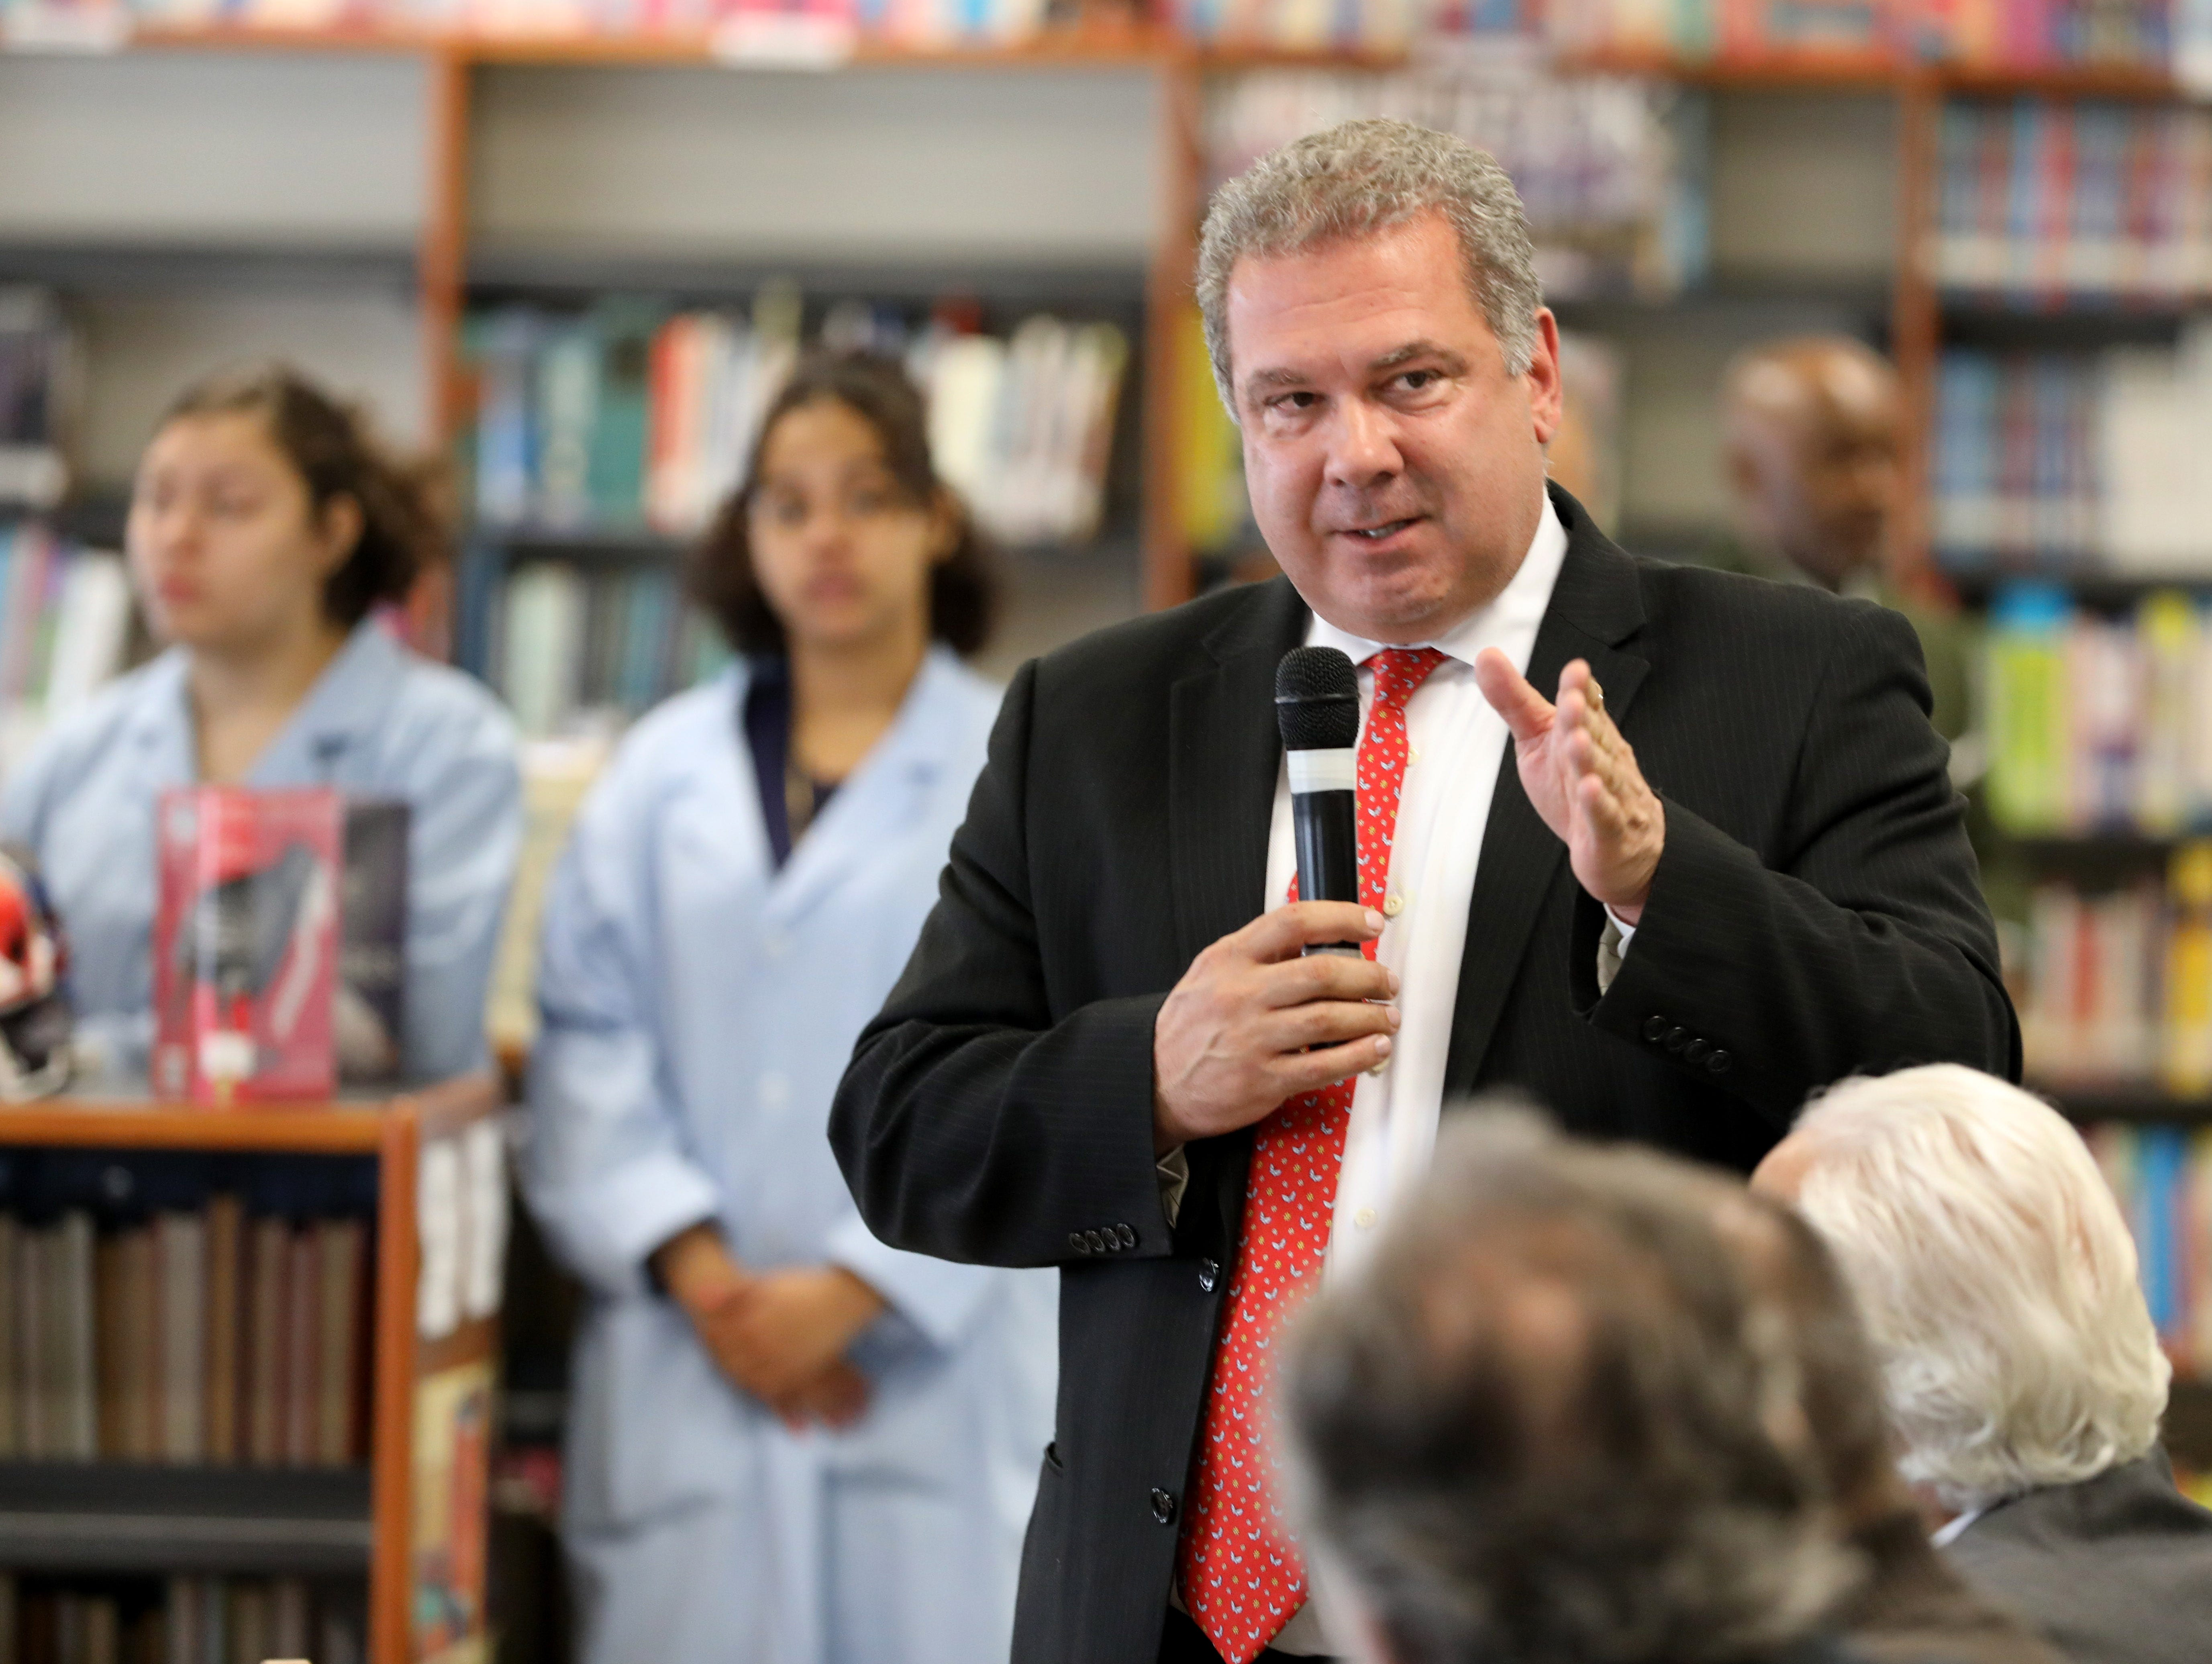 Yonkers Mayor Mike Spano welcomes U.S. Sen. Amy Klobuchar (D-Minn.), a Democratic presidential candidate, to Gorton High School in Yonkers, May 10, 2019.